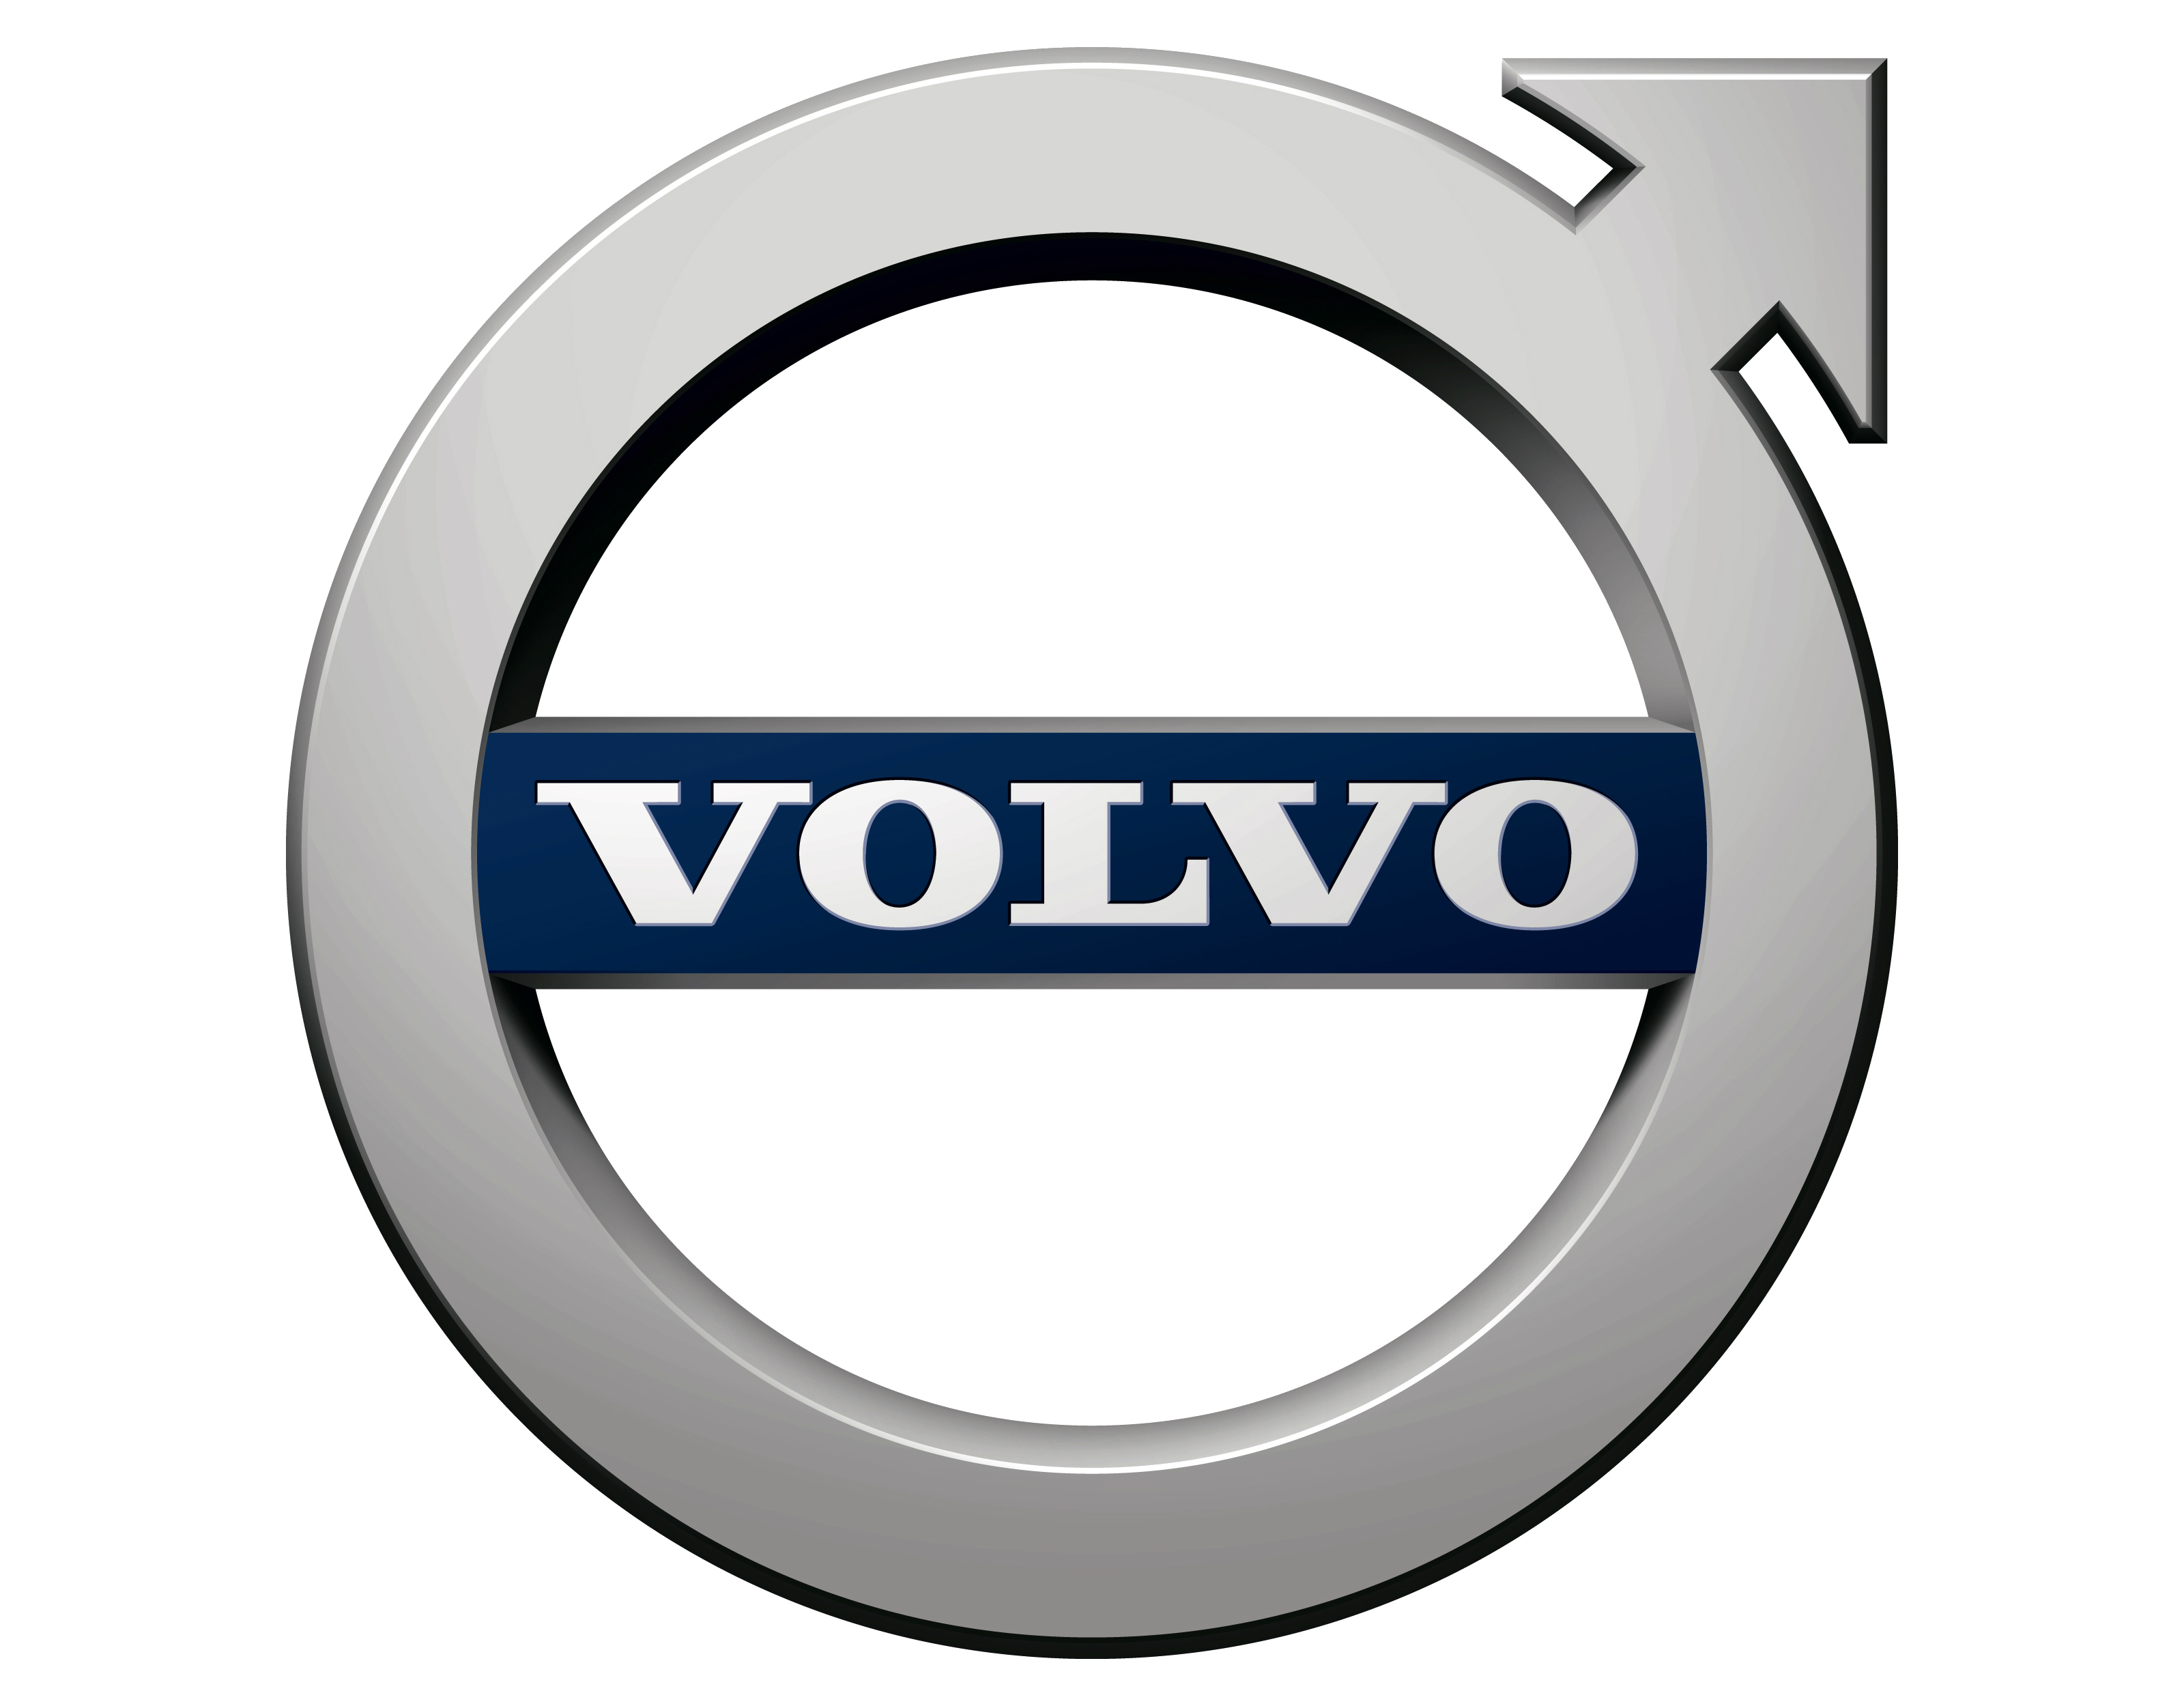 logo volvo histoire image de symbole et embl me. Black Bedroom Furniture Sets. Home Design Ideas